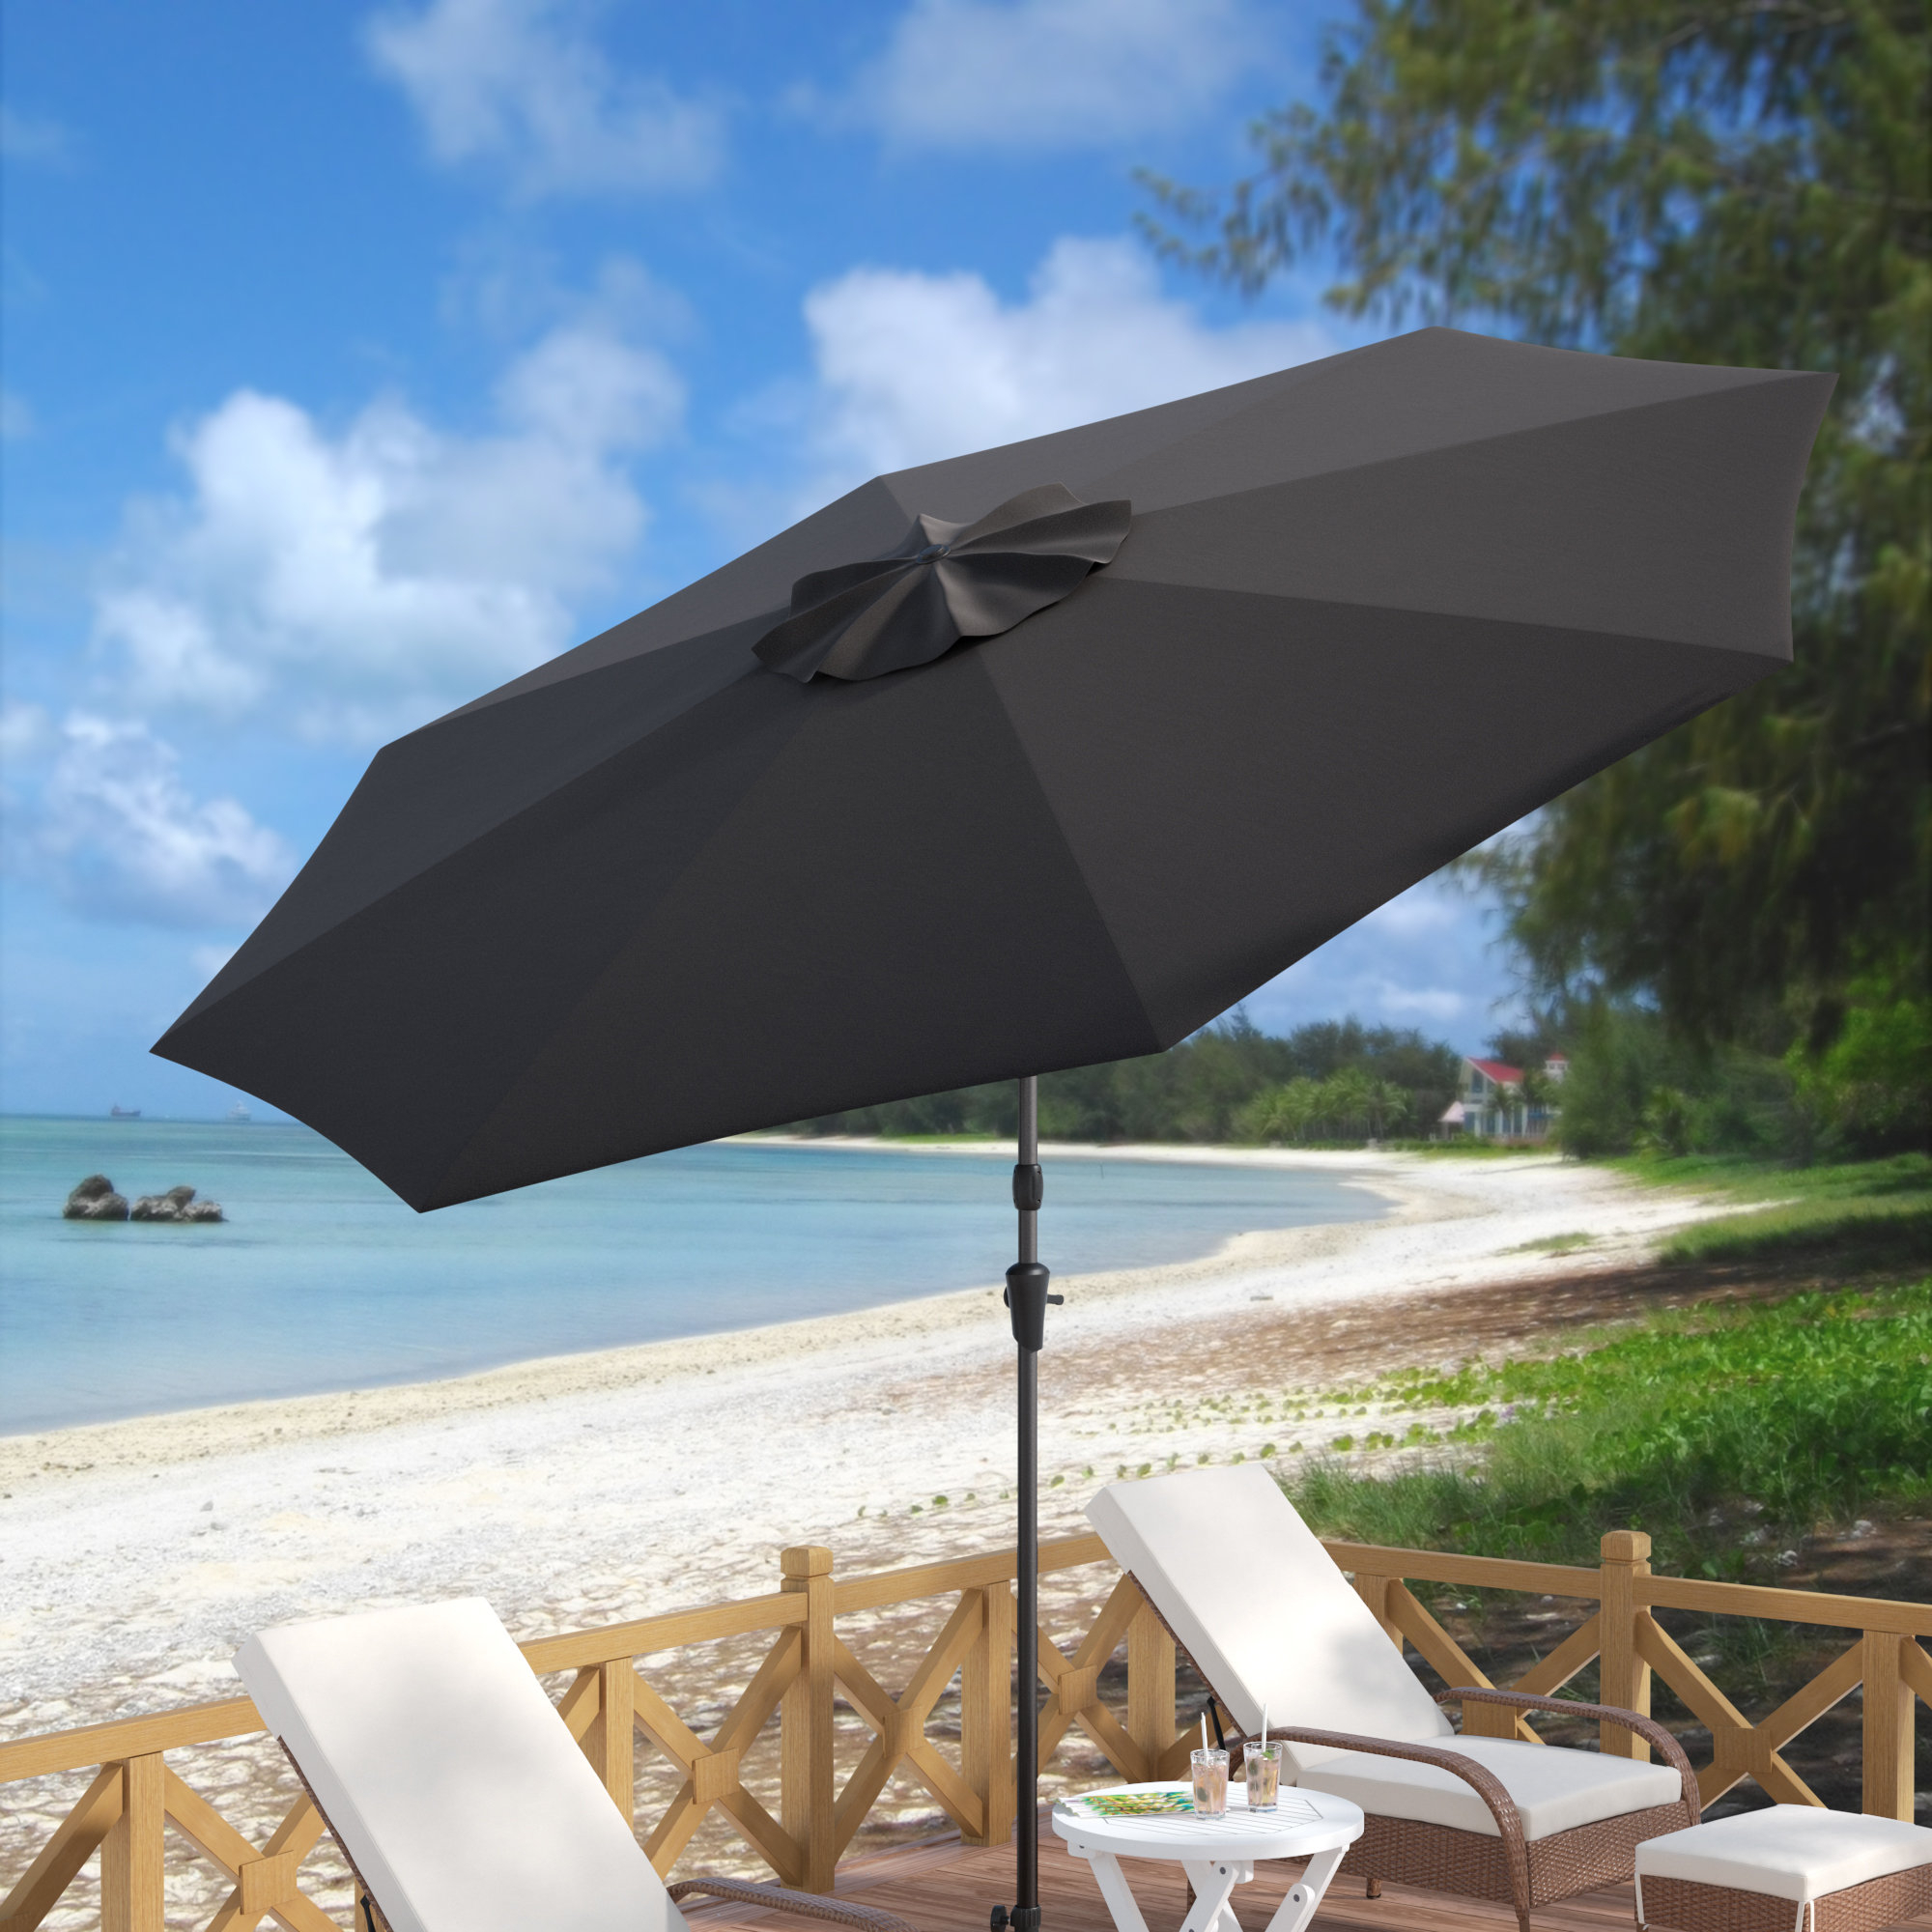 Preferred Featherste Market Umbrellas With Regard To Beachcrest Home Markley Market Beach Umbrella (View 20 of 20)